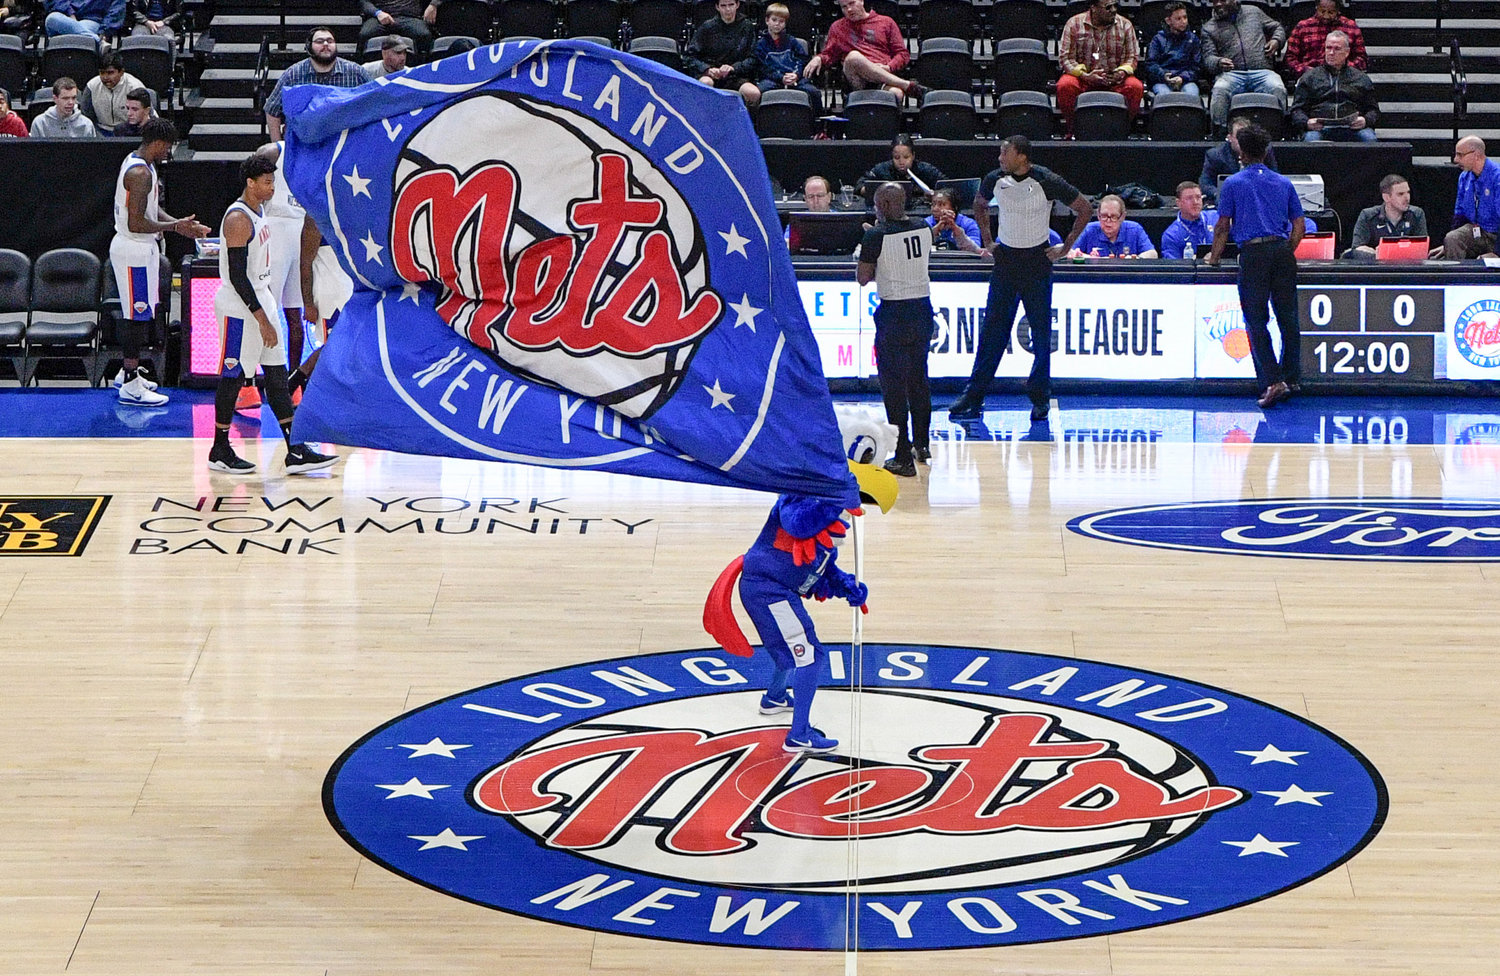 The Long Island Nets began the fourth season in franchise history last weekend and come off an exciting run to the G League finals.